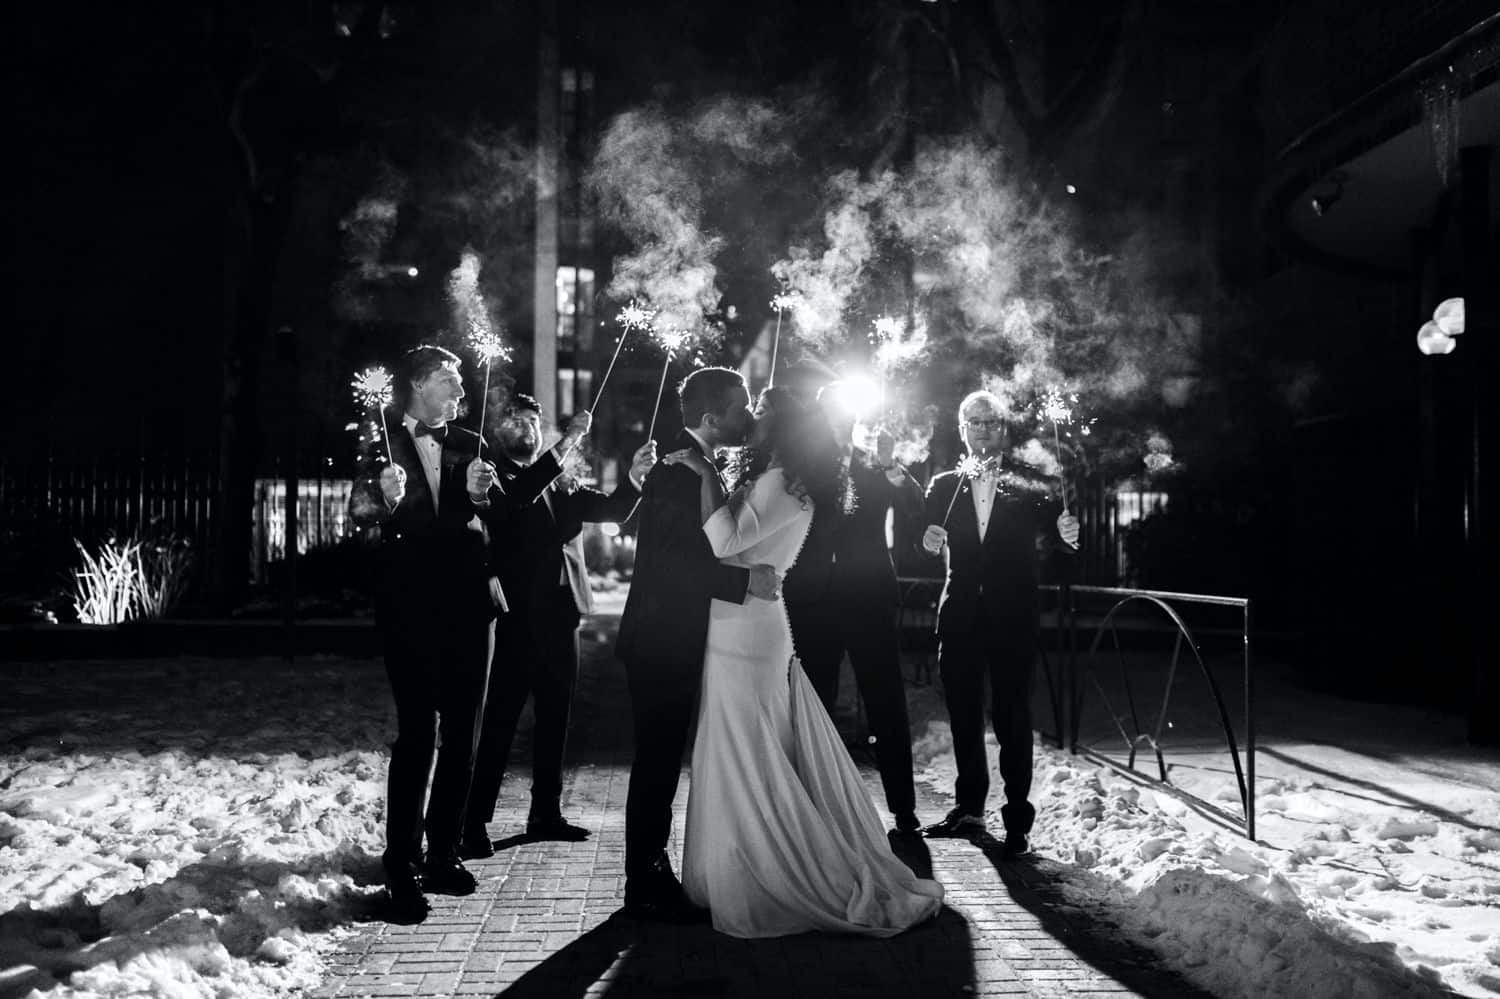 A bride and groom kiss as their wedding party waves sparklers at night